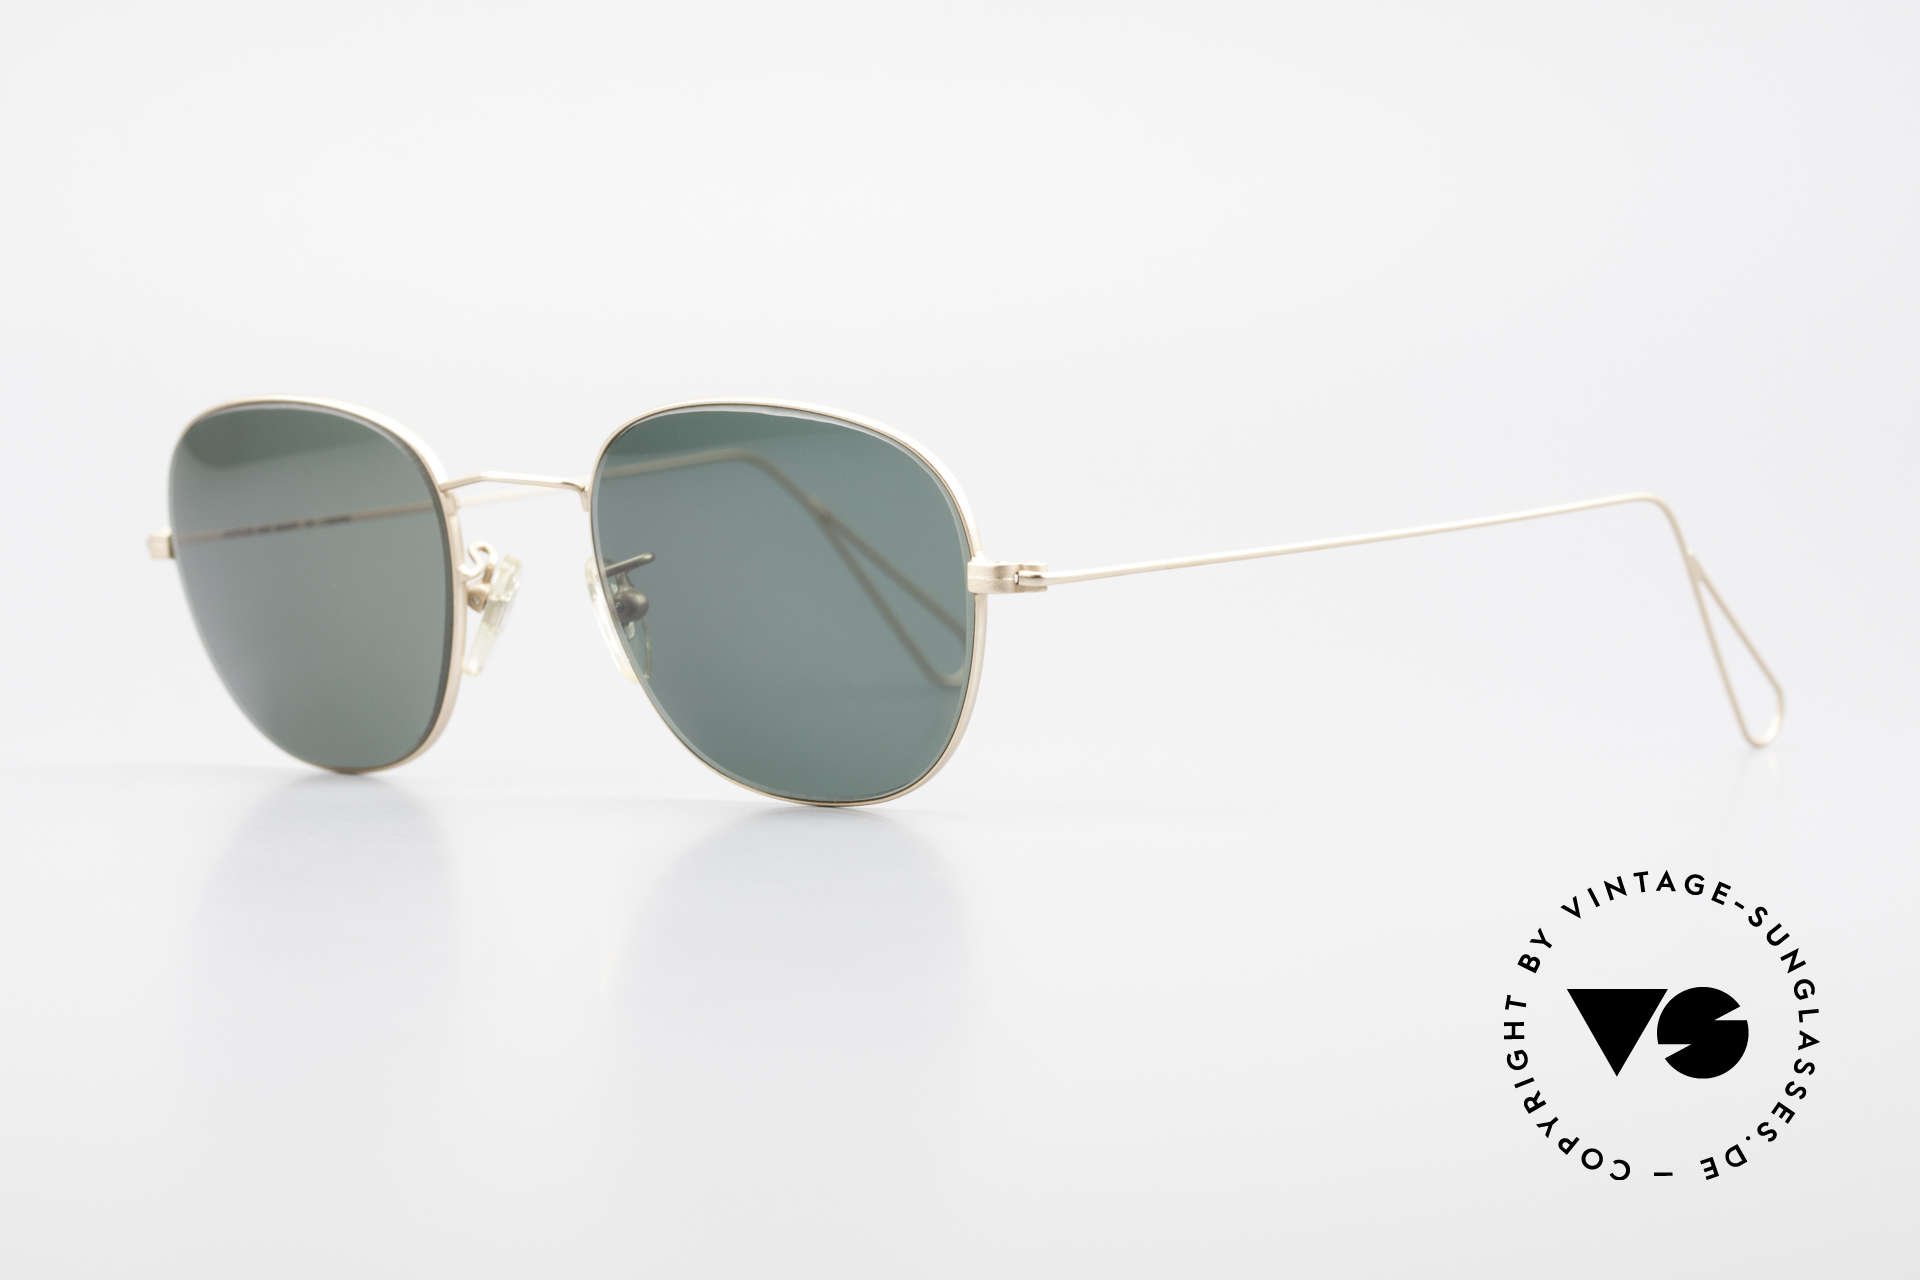 Cutler And Gross 0307 Classic 90s Designer Sunglasses, stylish & distinctive in absence of an ostentatious logo, Made for Men and Women